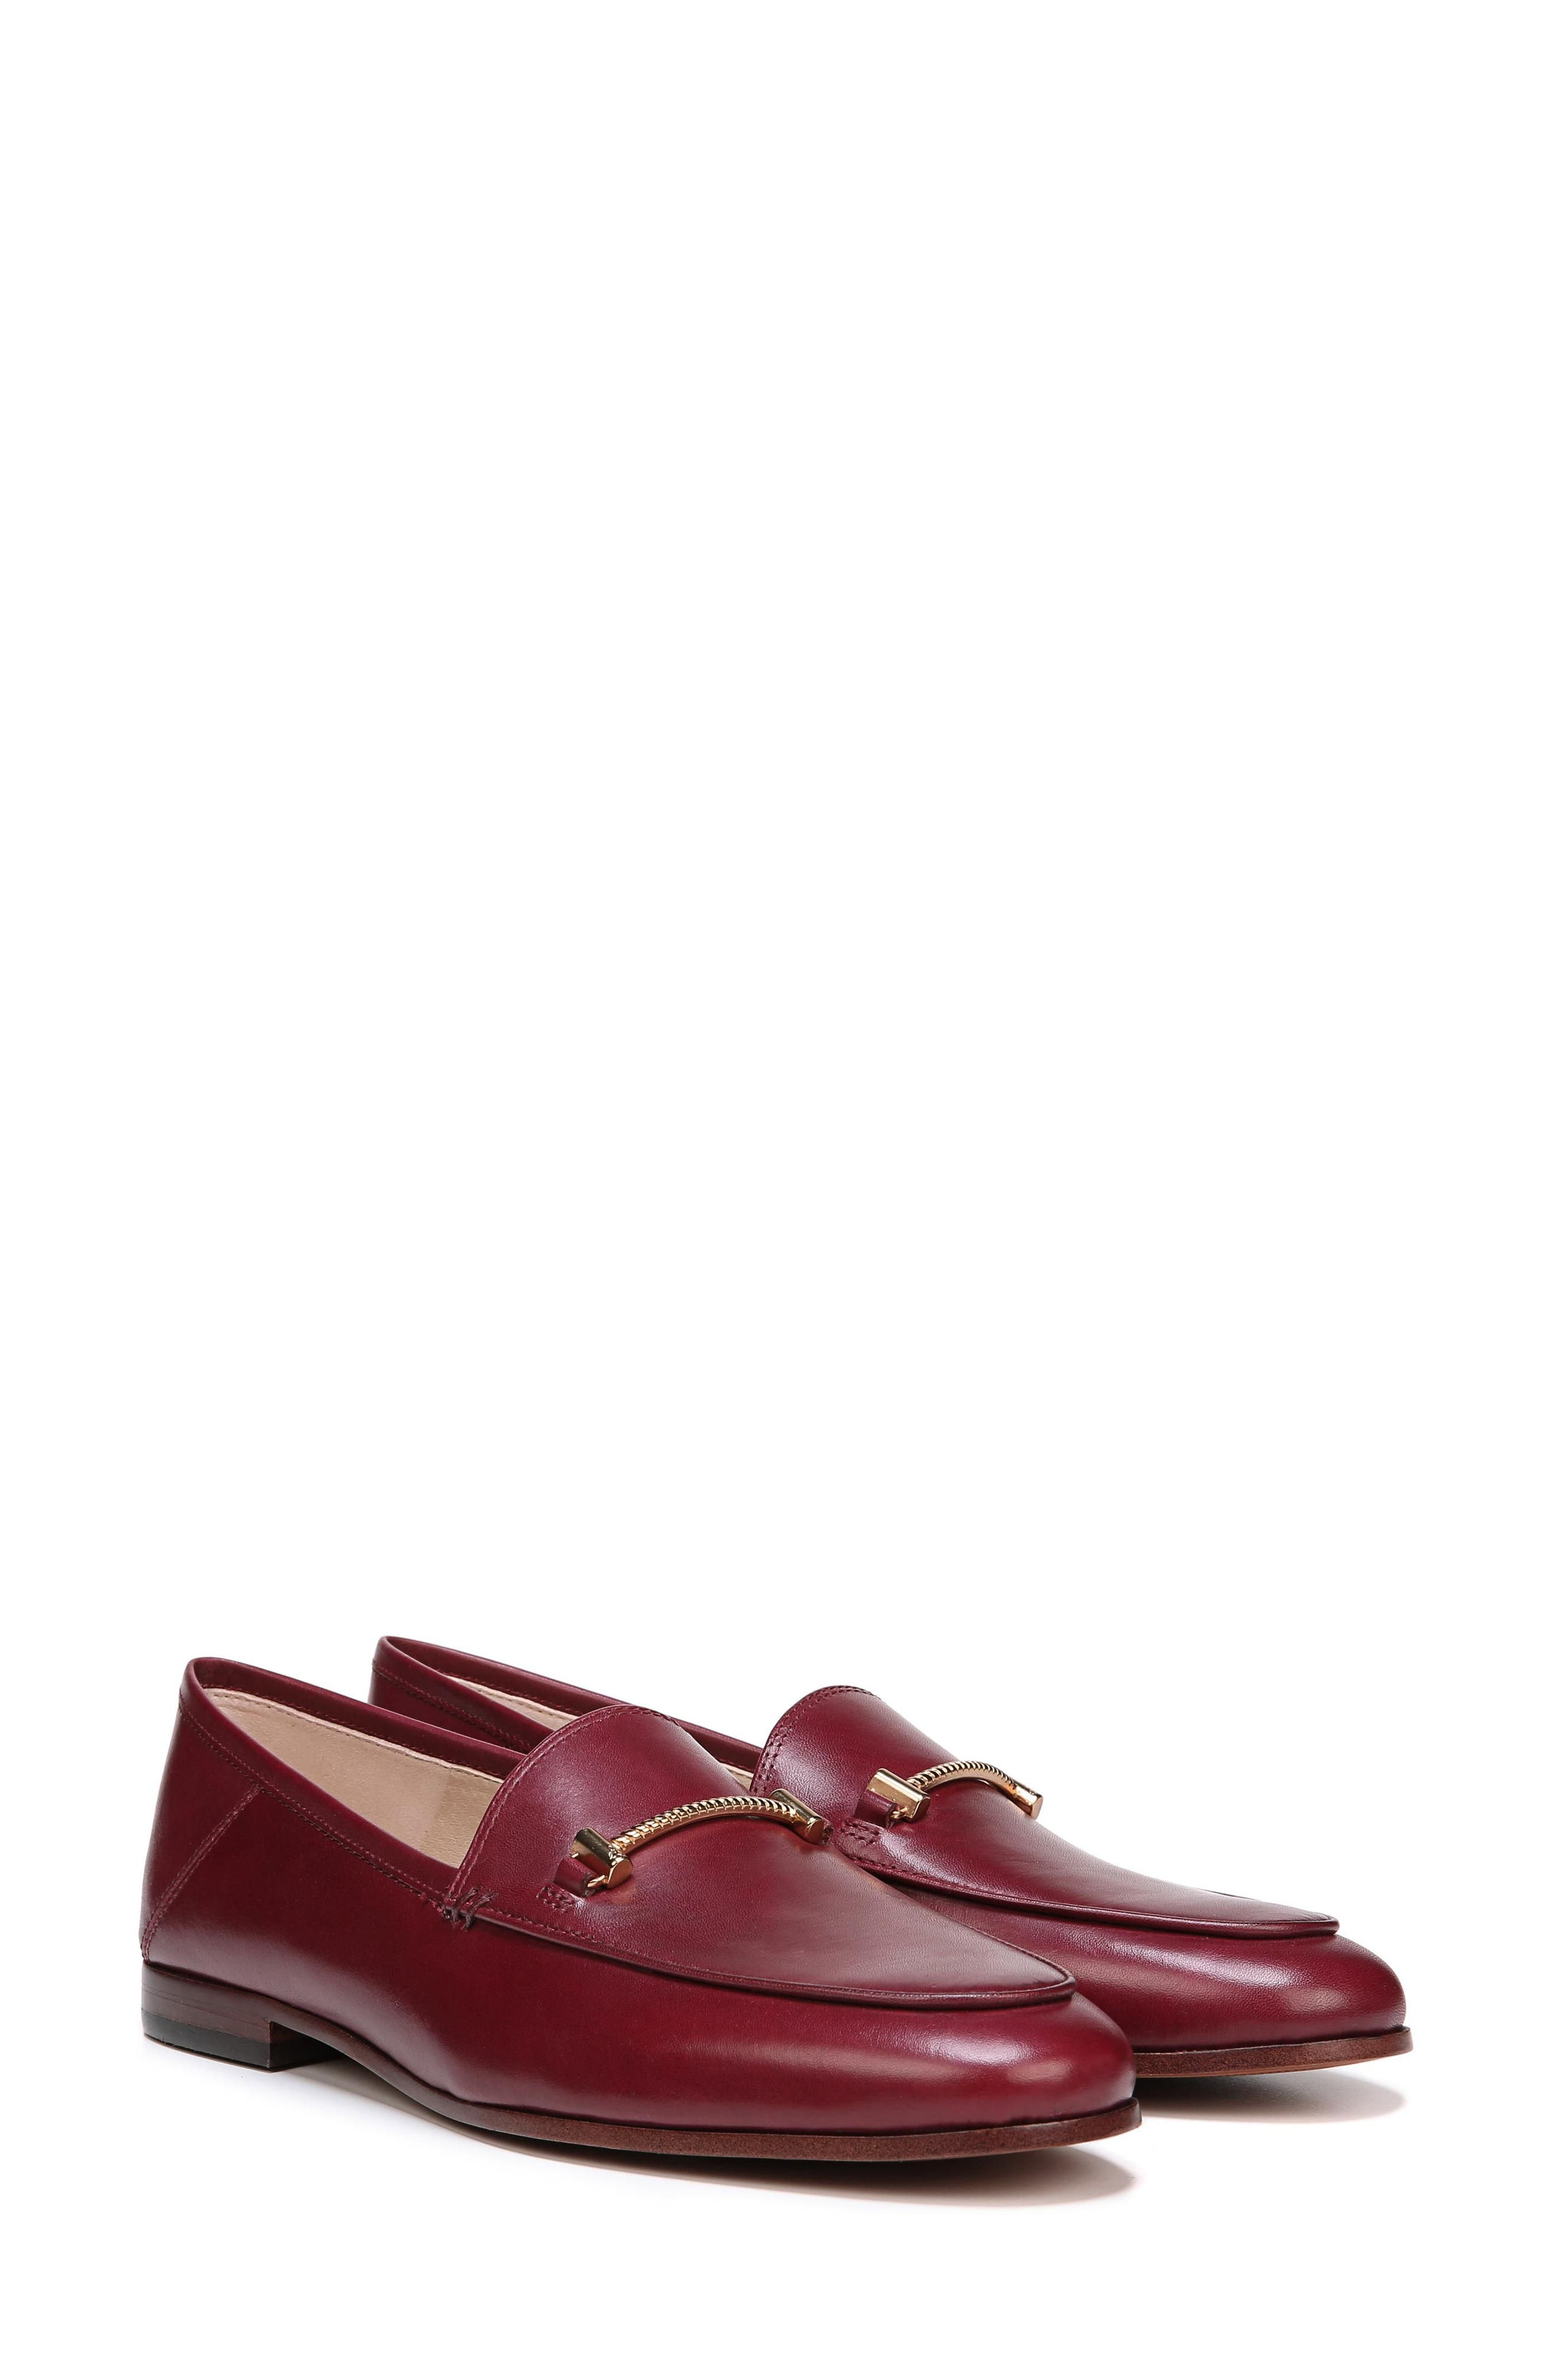 Lior Loafer,                             Alternate thumbnail 10, color,                             BEET RED LEATHER